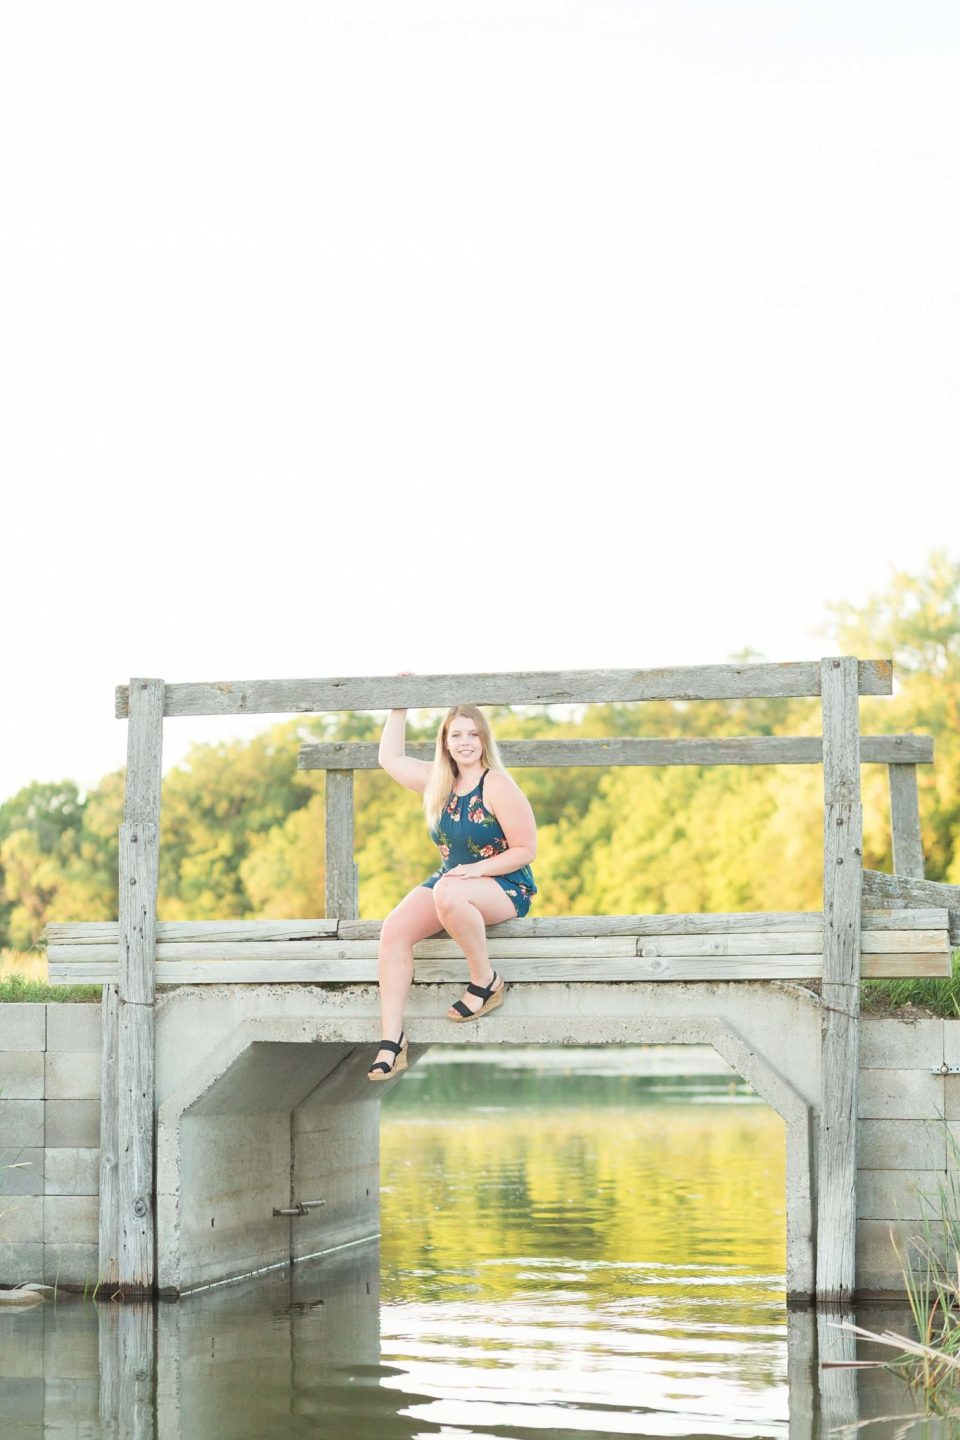 A High school senior sits on a wooden bridge over a lake for her senior portrait session